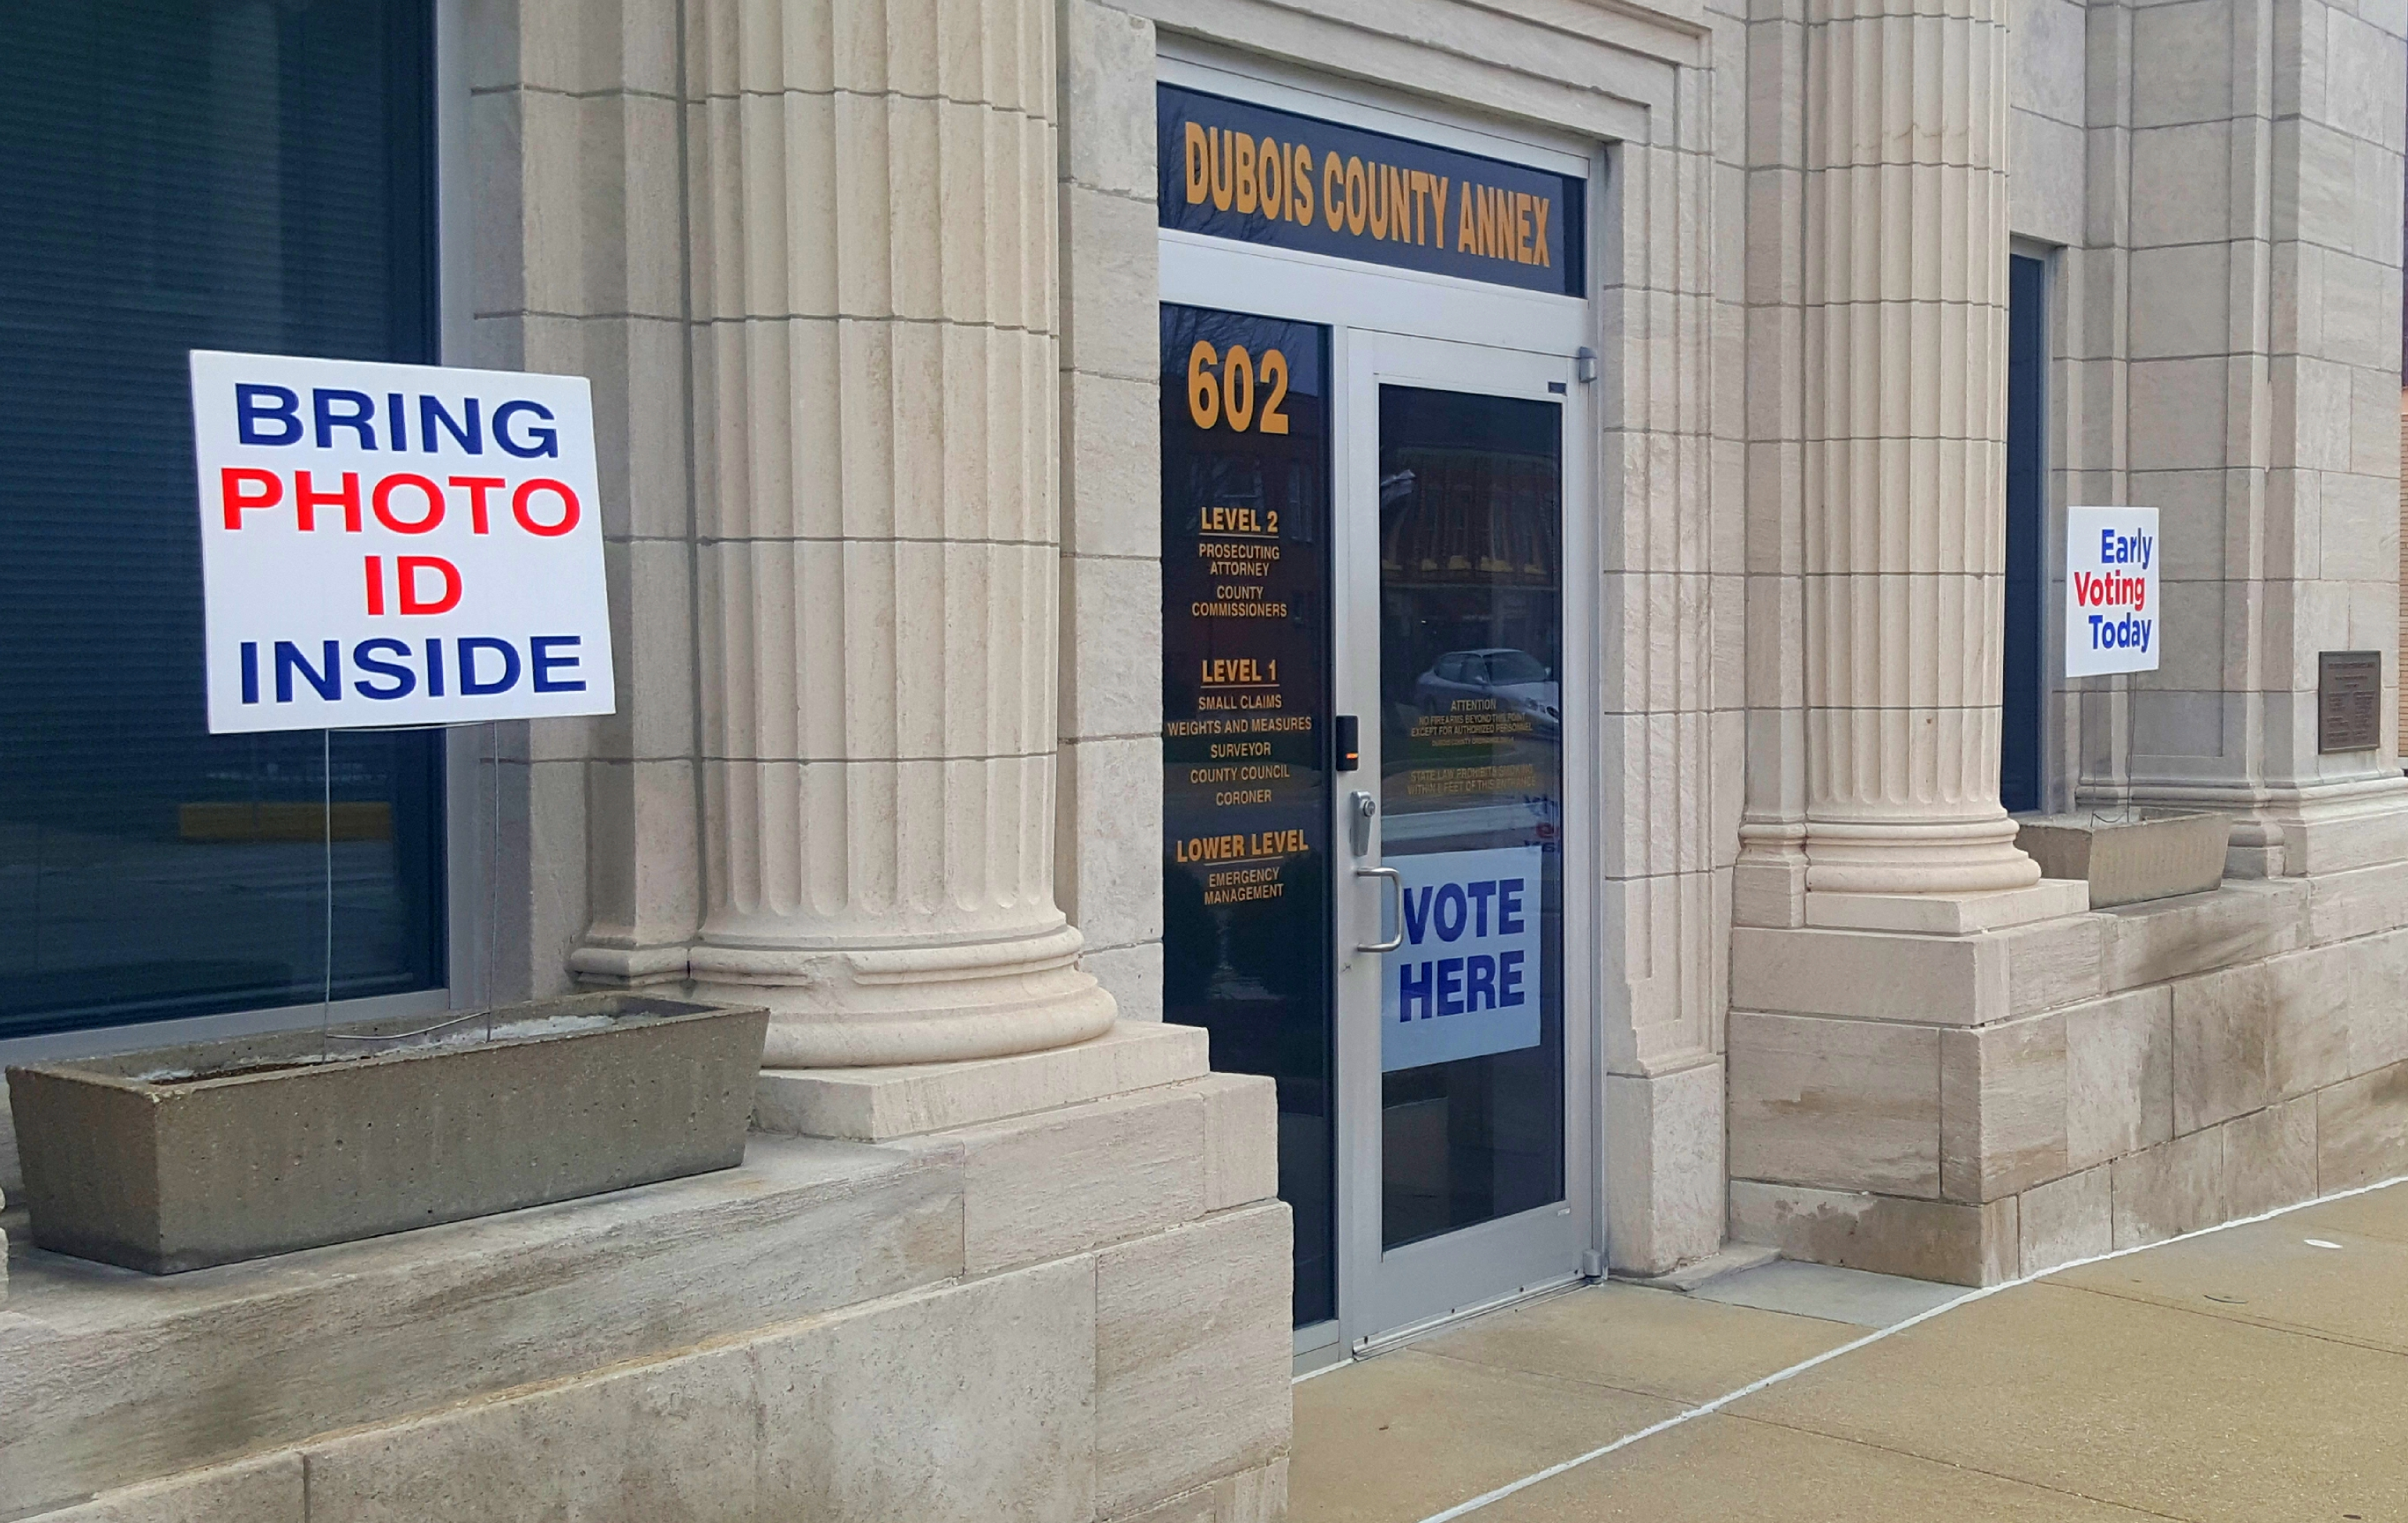 Early Voting Begins in Dubois County, New Location This Year